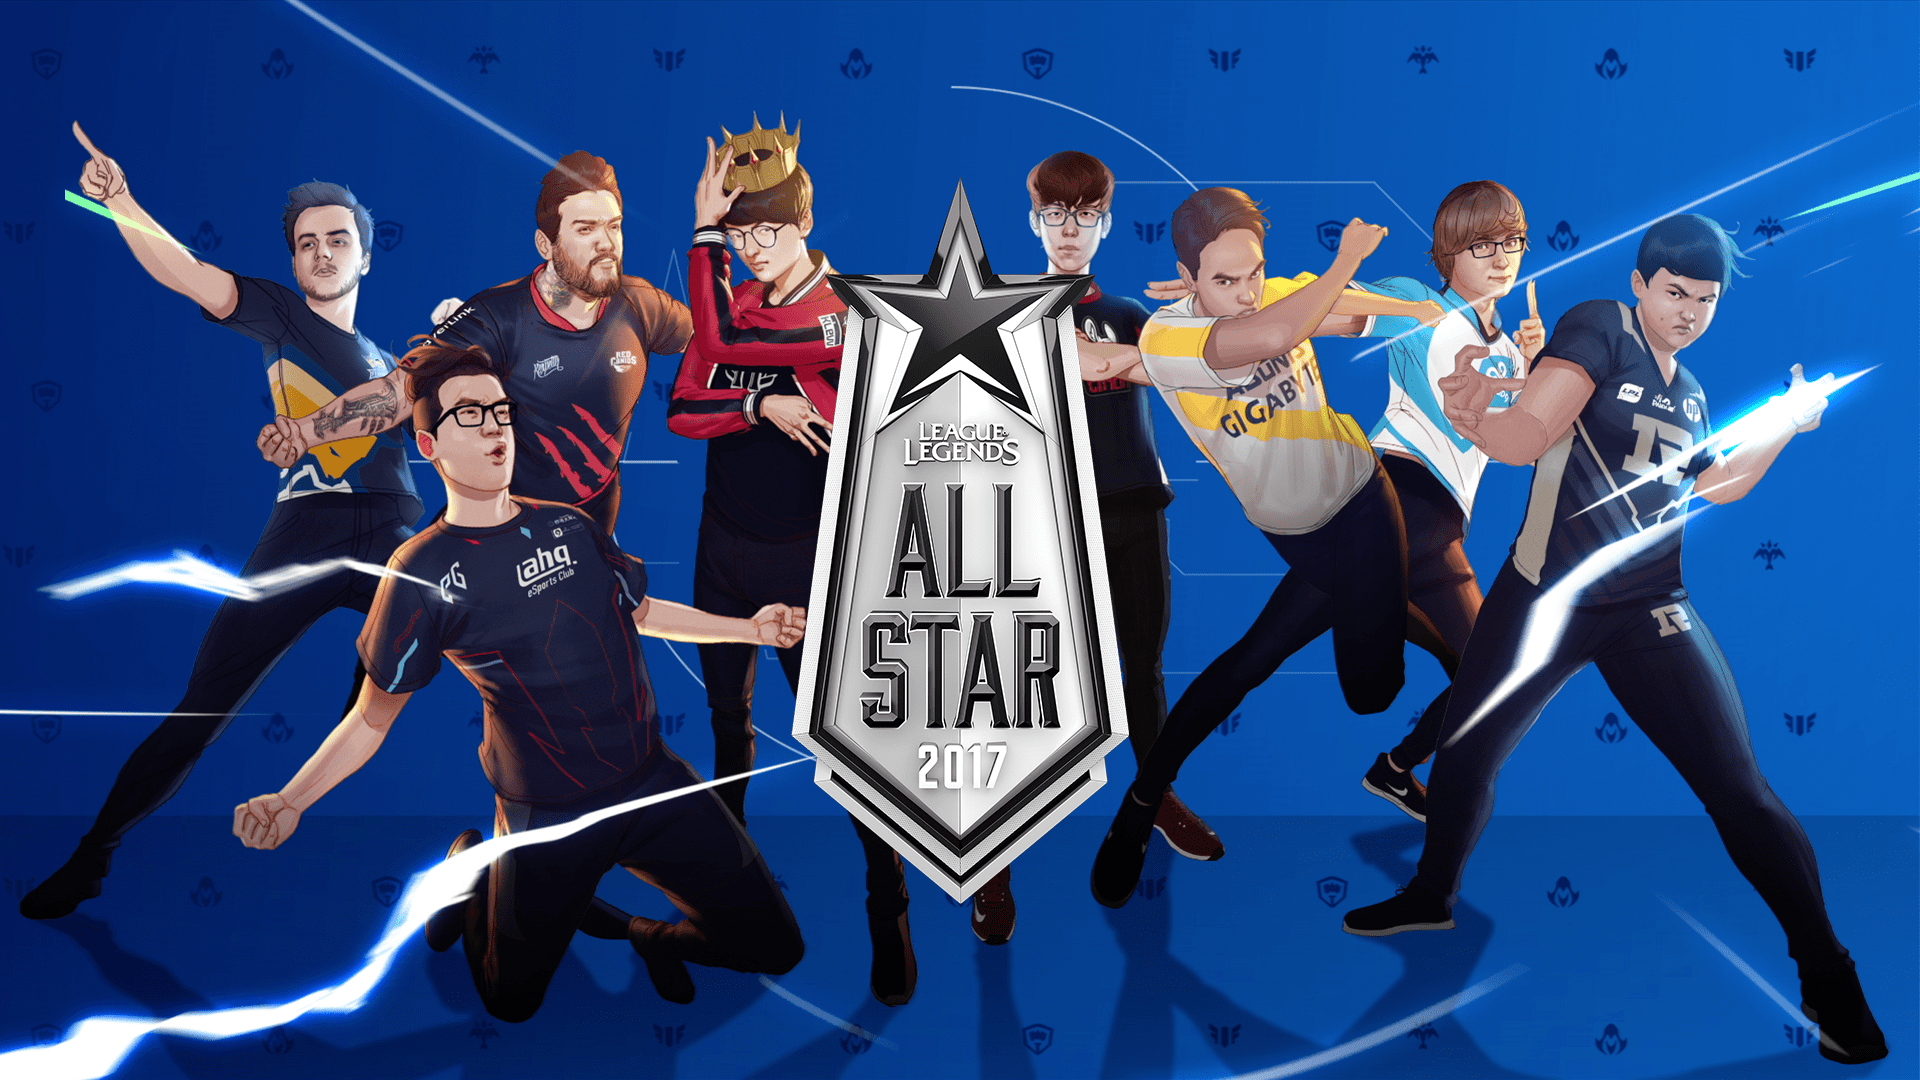 All Star All Star 2017 Wallpapers Lolesports